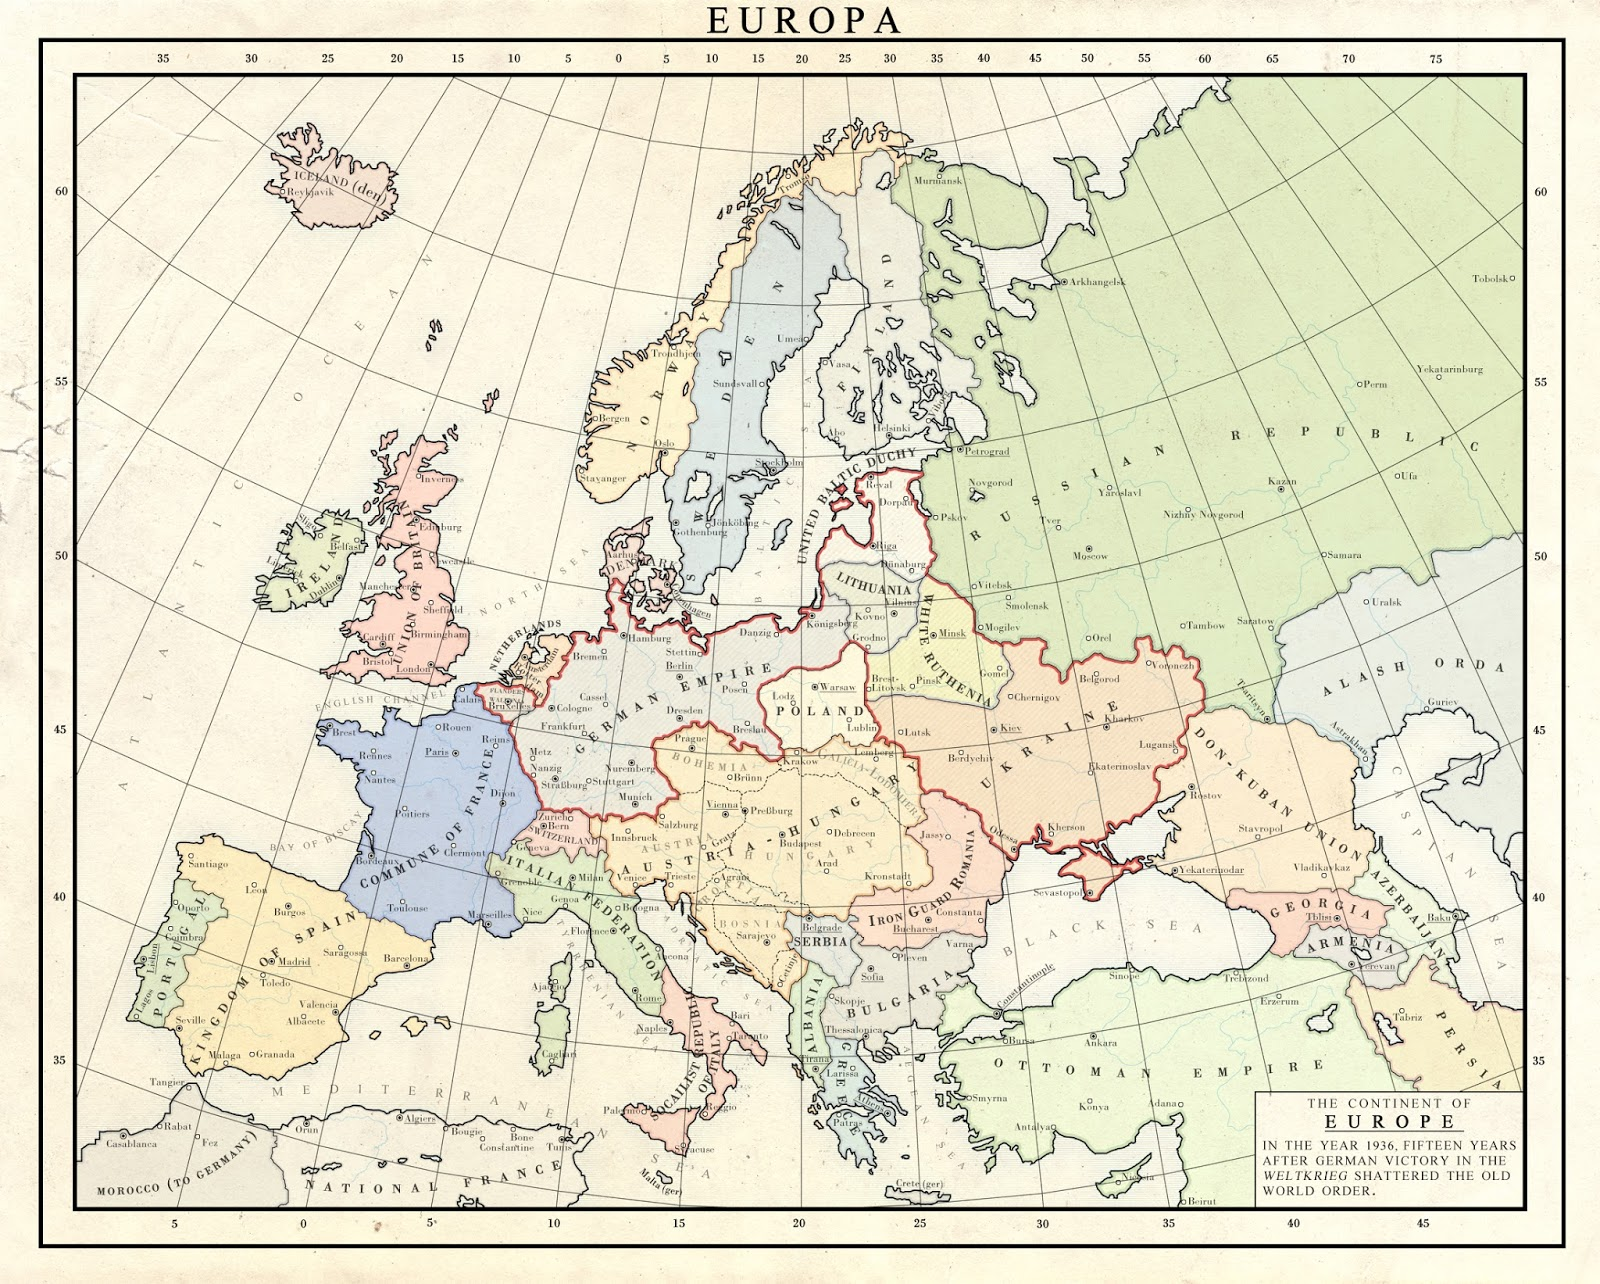 baltic nations map with Map Monday Kaiserreich 1936 By Milites on Map Shows Global Importance And Reach Of Nato 2016 3 as well Intersped Launches Weekly Groupage Service To Baltic States moreover Balto Slavic languages together with The Ebb And Flow Of Russia In Europe also Europe.